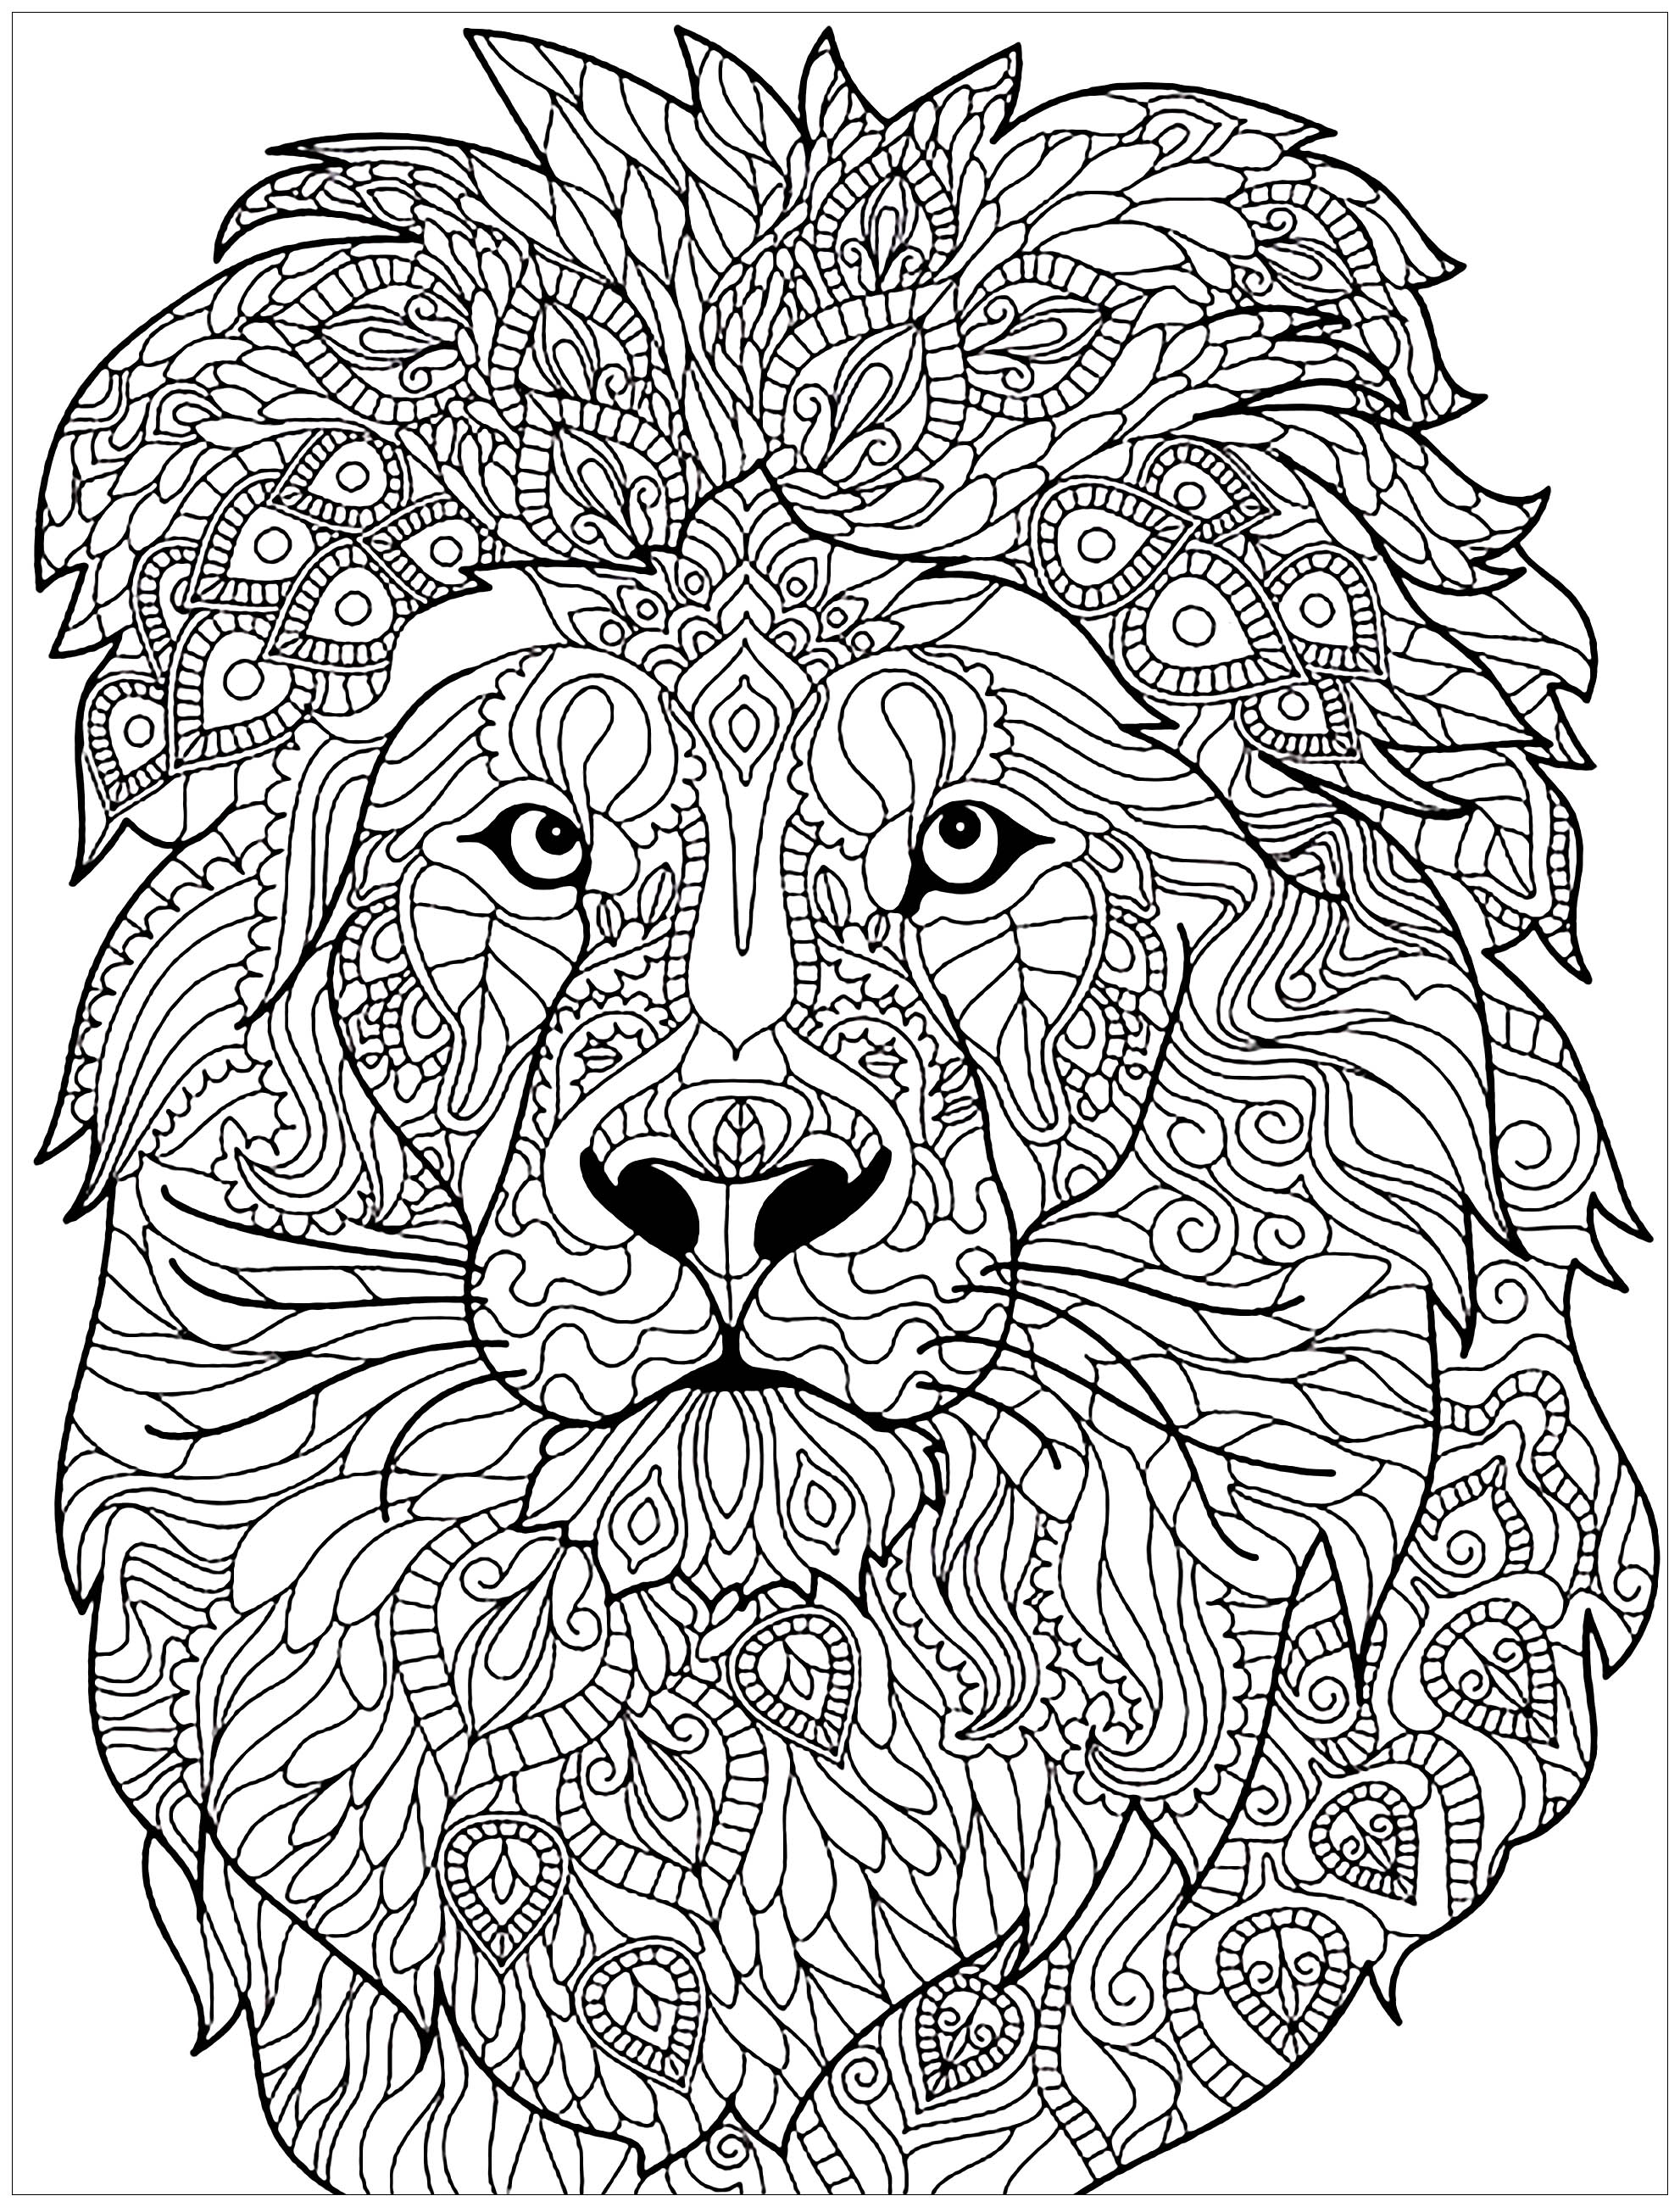 Lions coloriages difficiles pour adultes - Coloriages lion ...